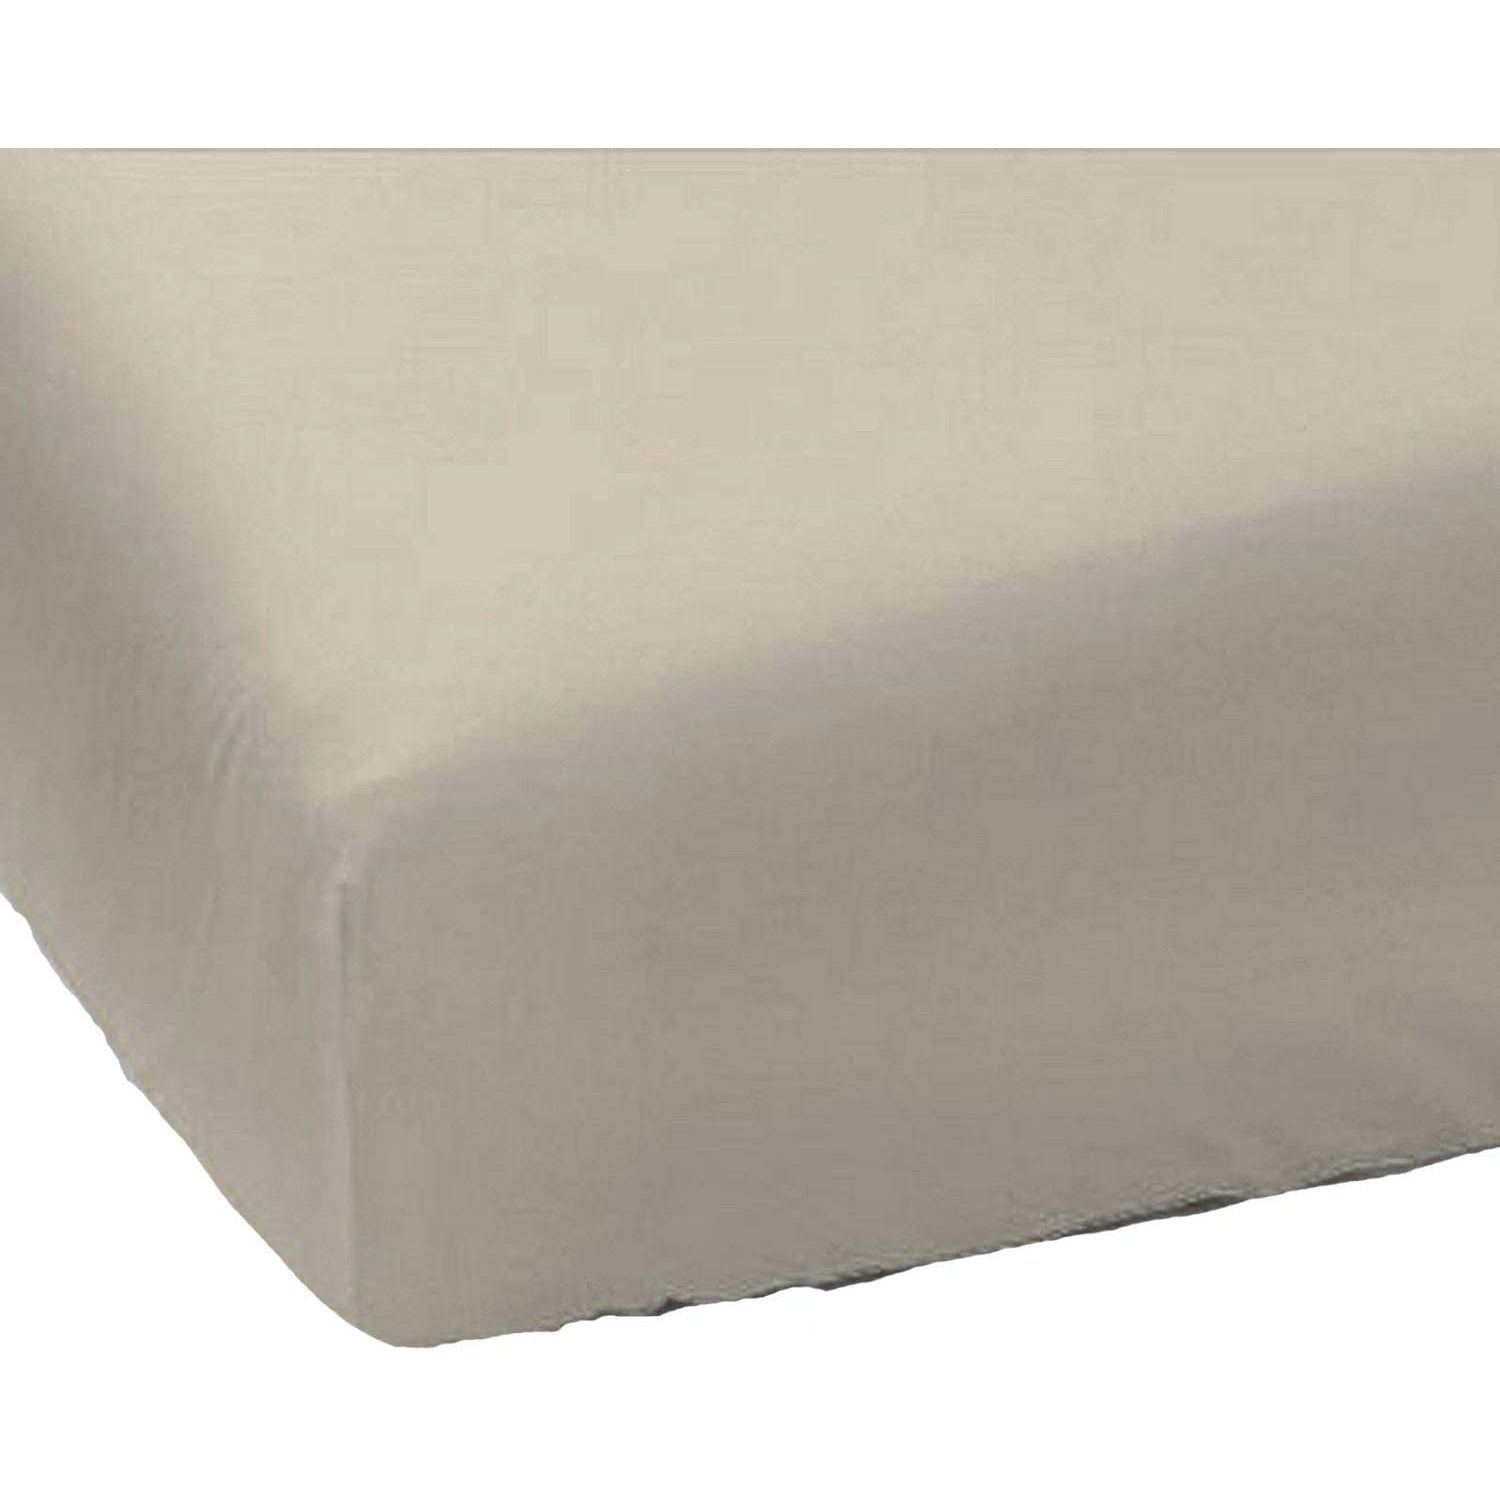 Plain Dyed Polycotton Fitted Sheets Single Double King Super King Pillowcases T200